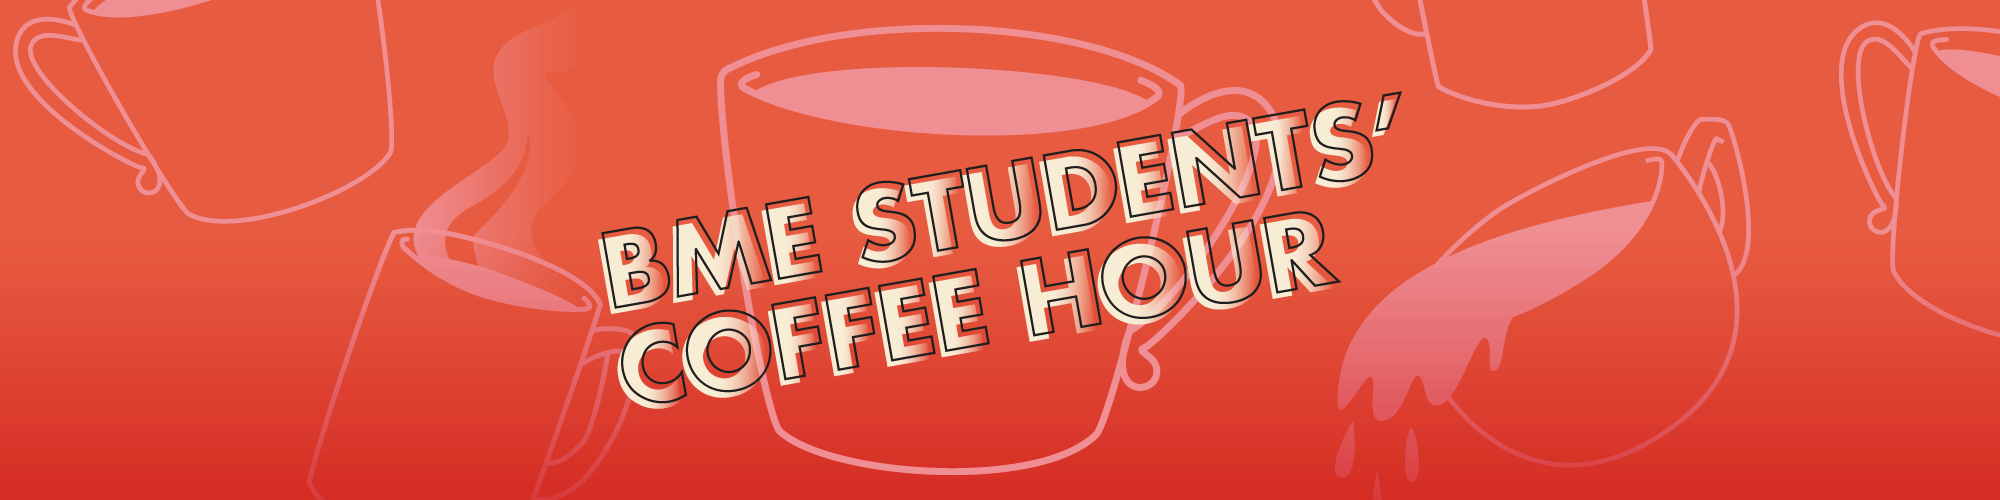 BME Students' Coffee Hour